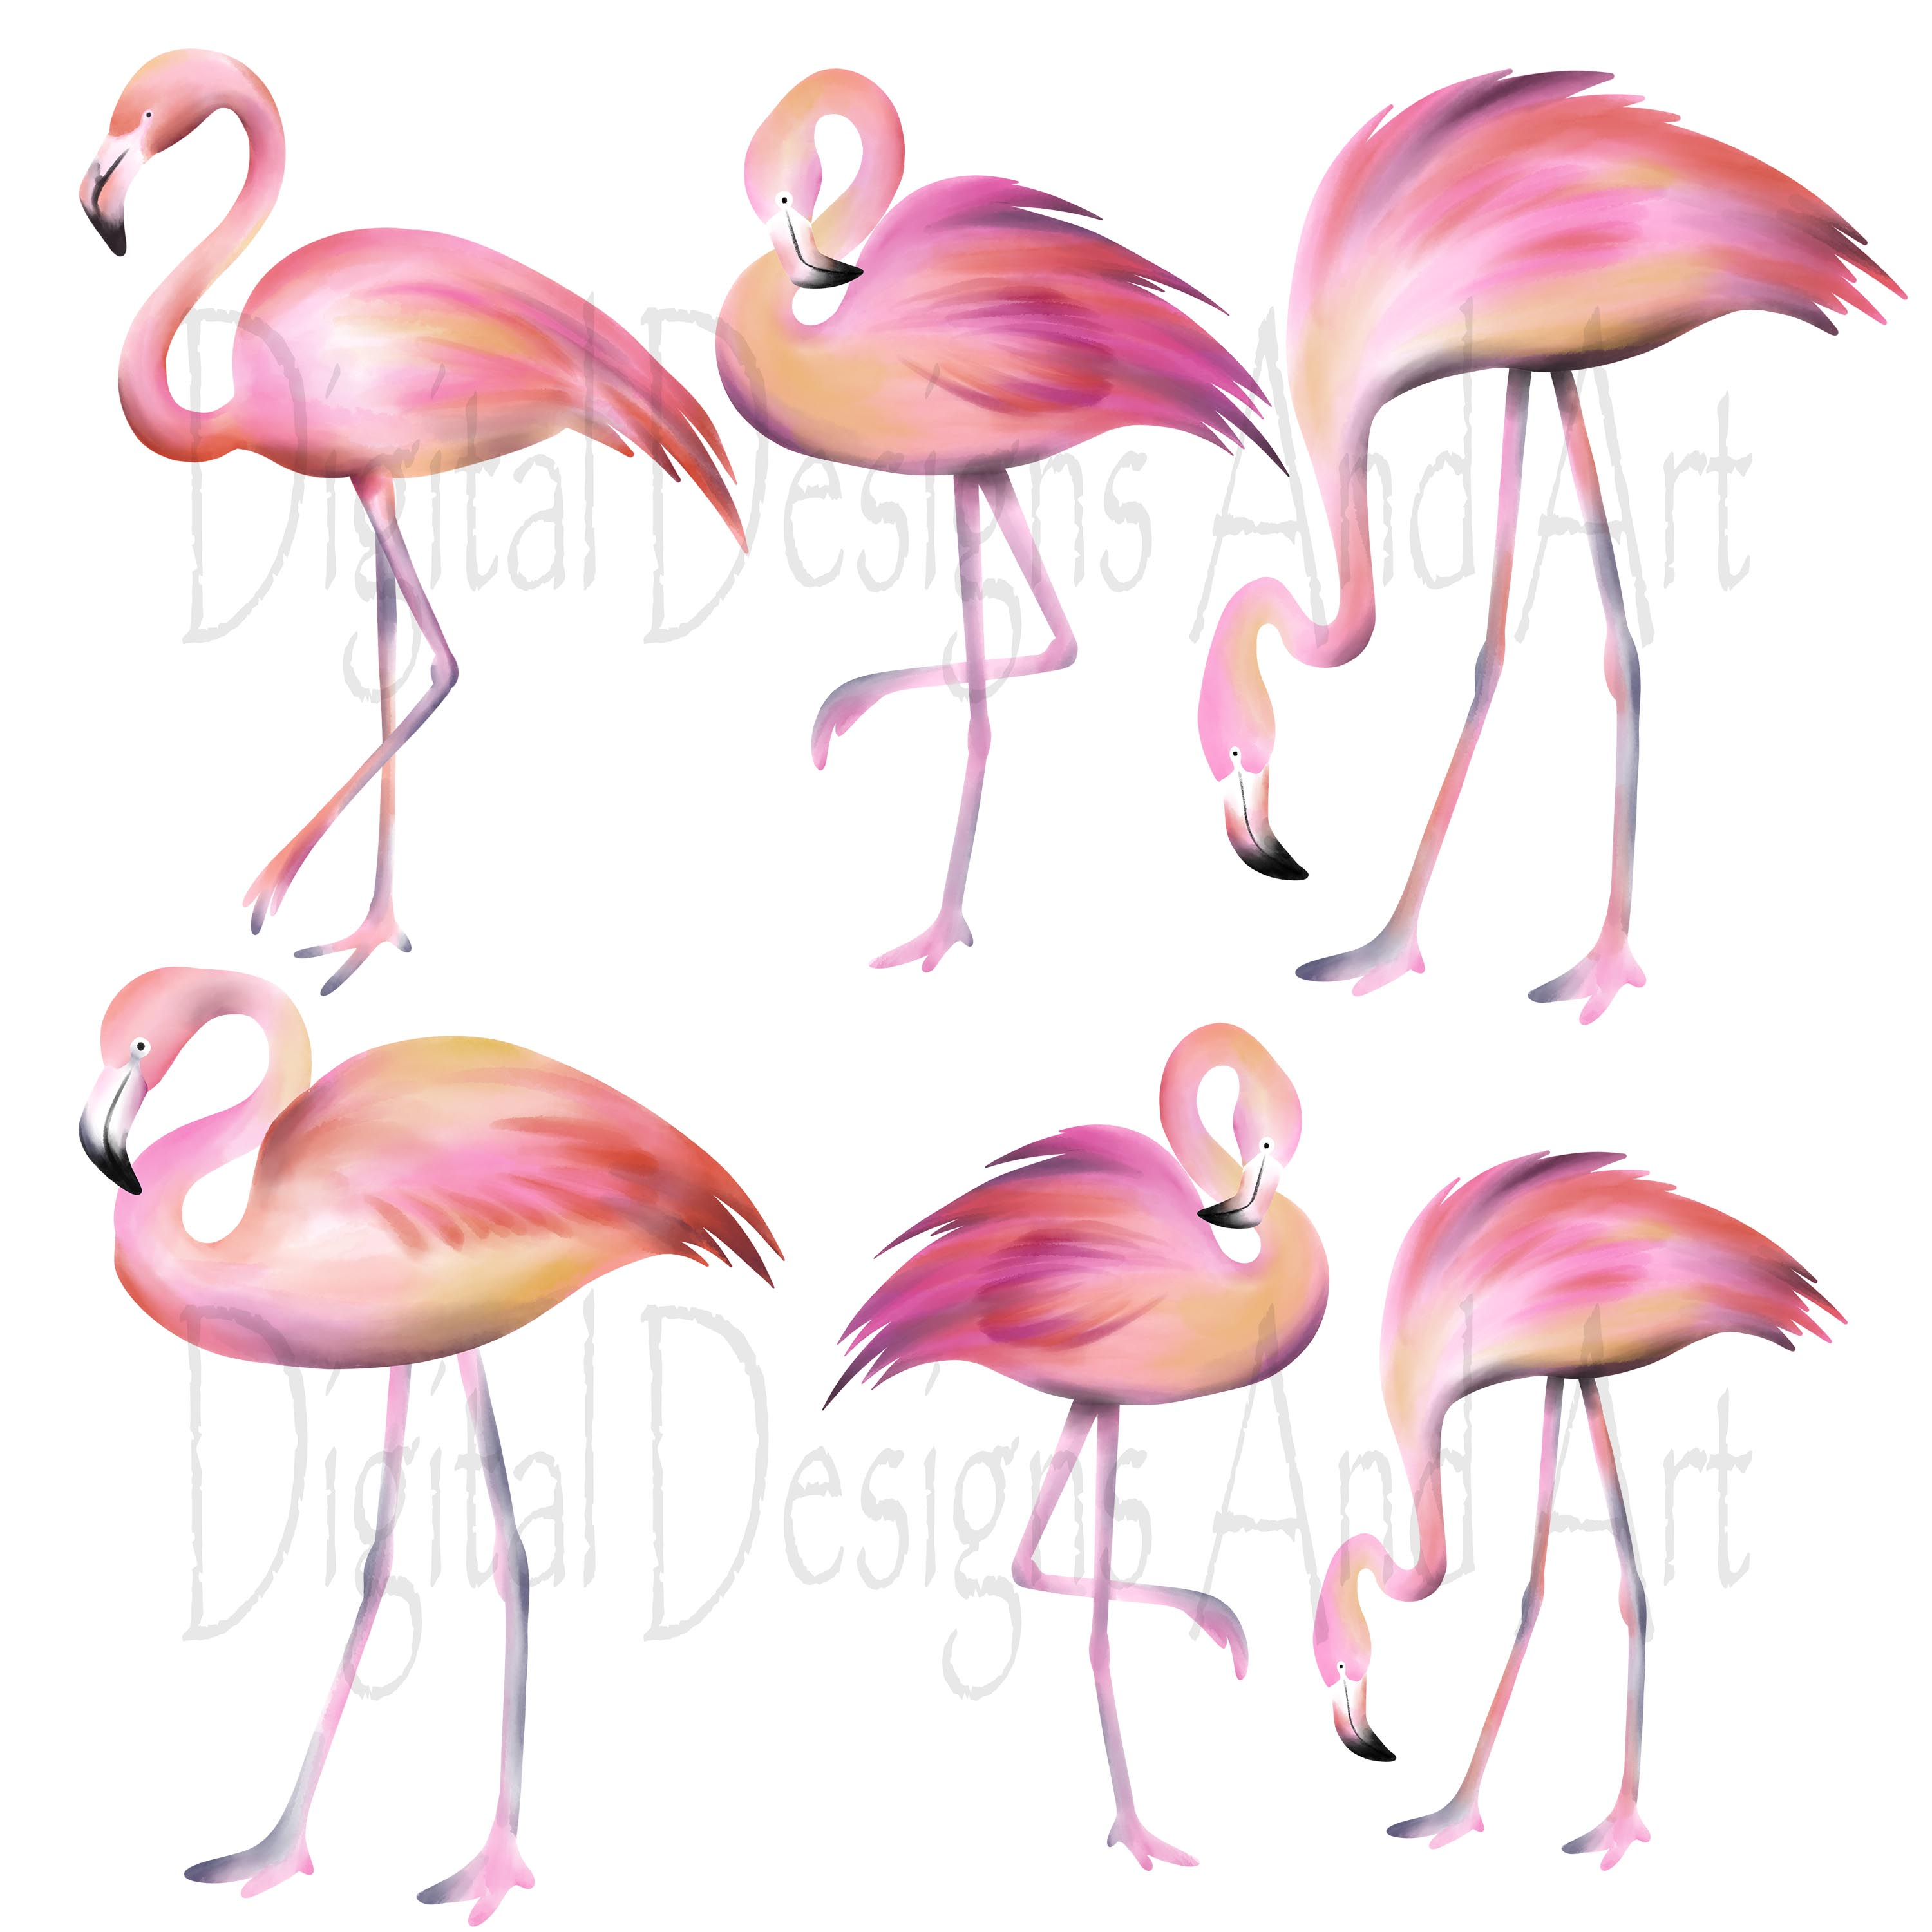 Pink flamingo clipart example image 3